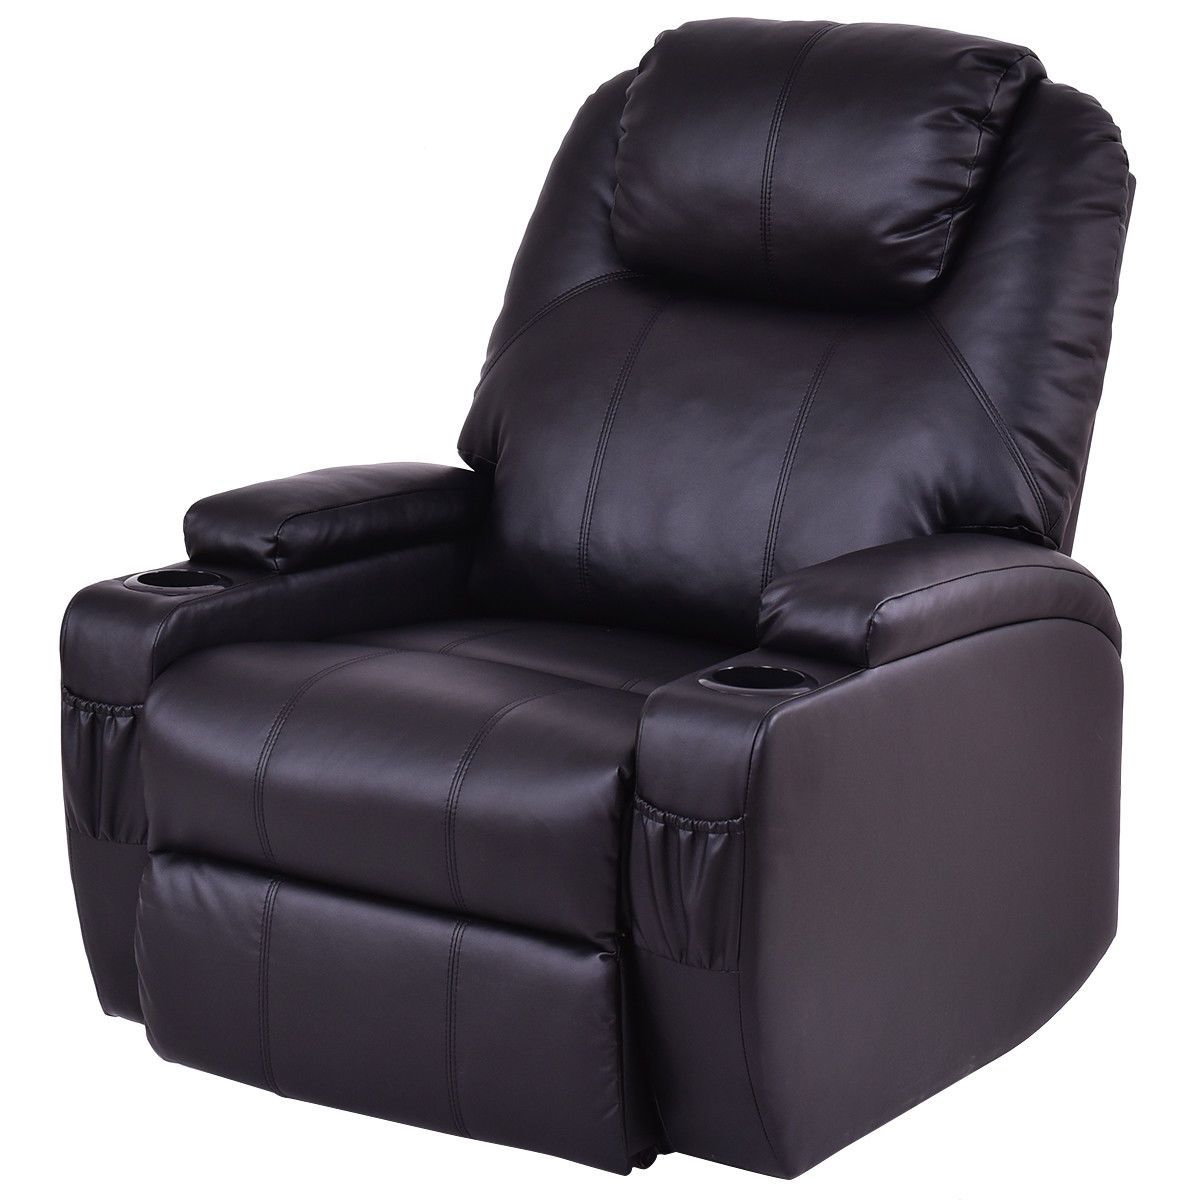 Electric power lift chair recliner w remote cup holder